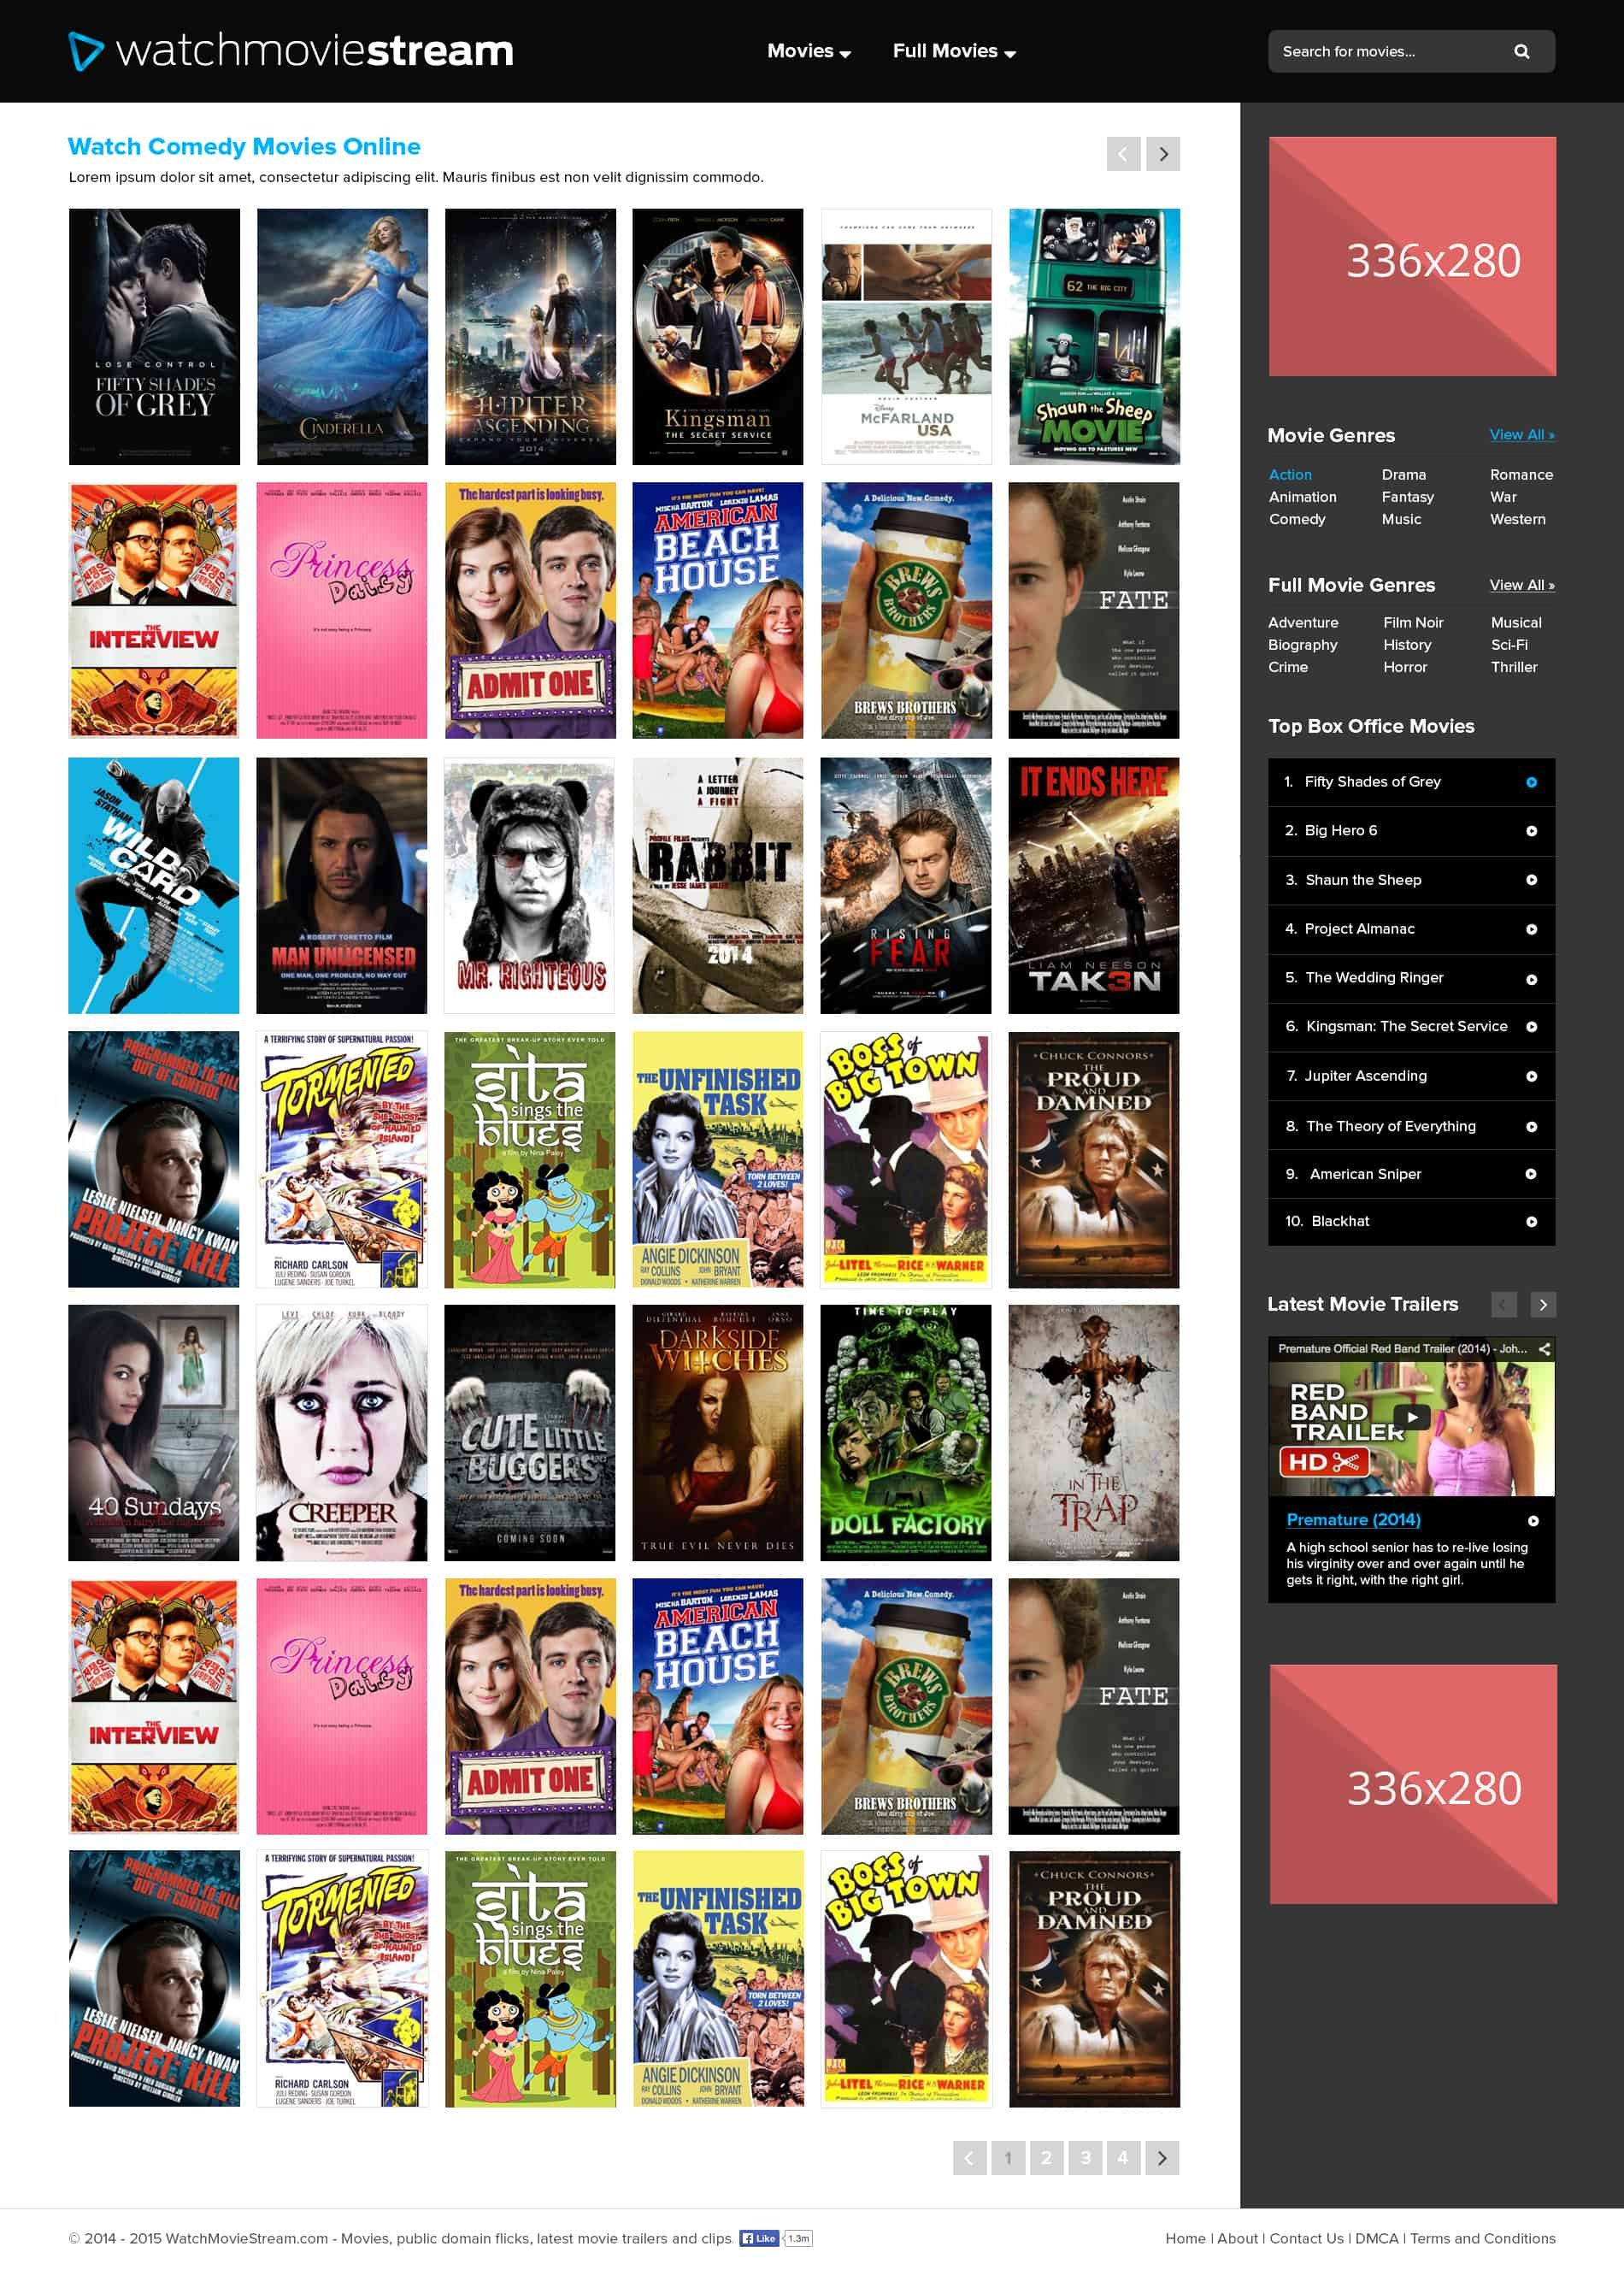 Watch Movie Stream - Genres